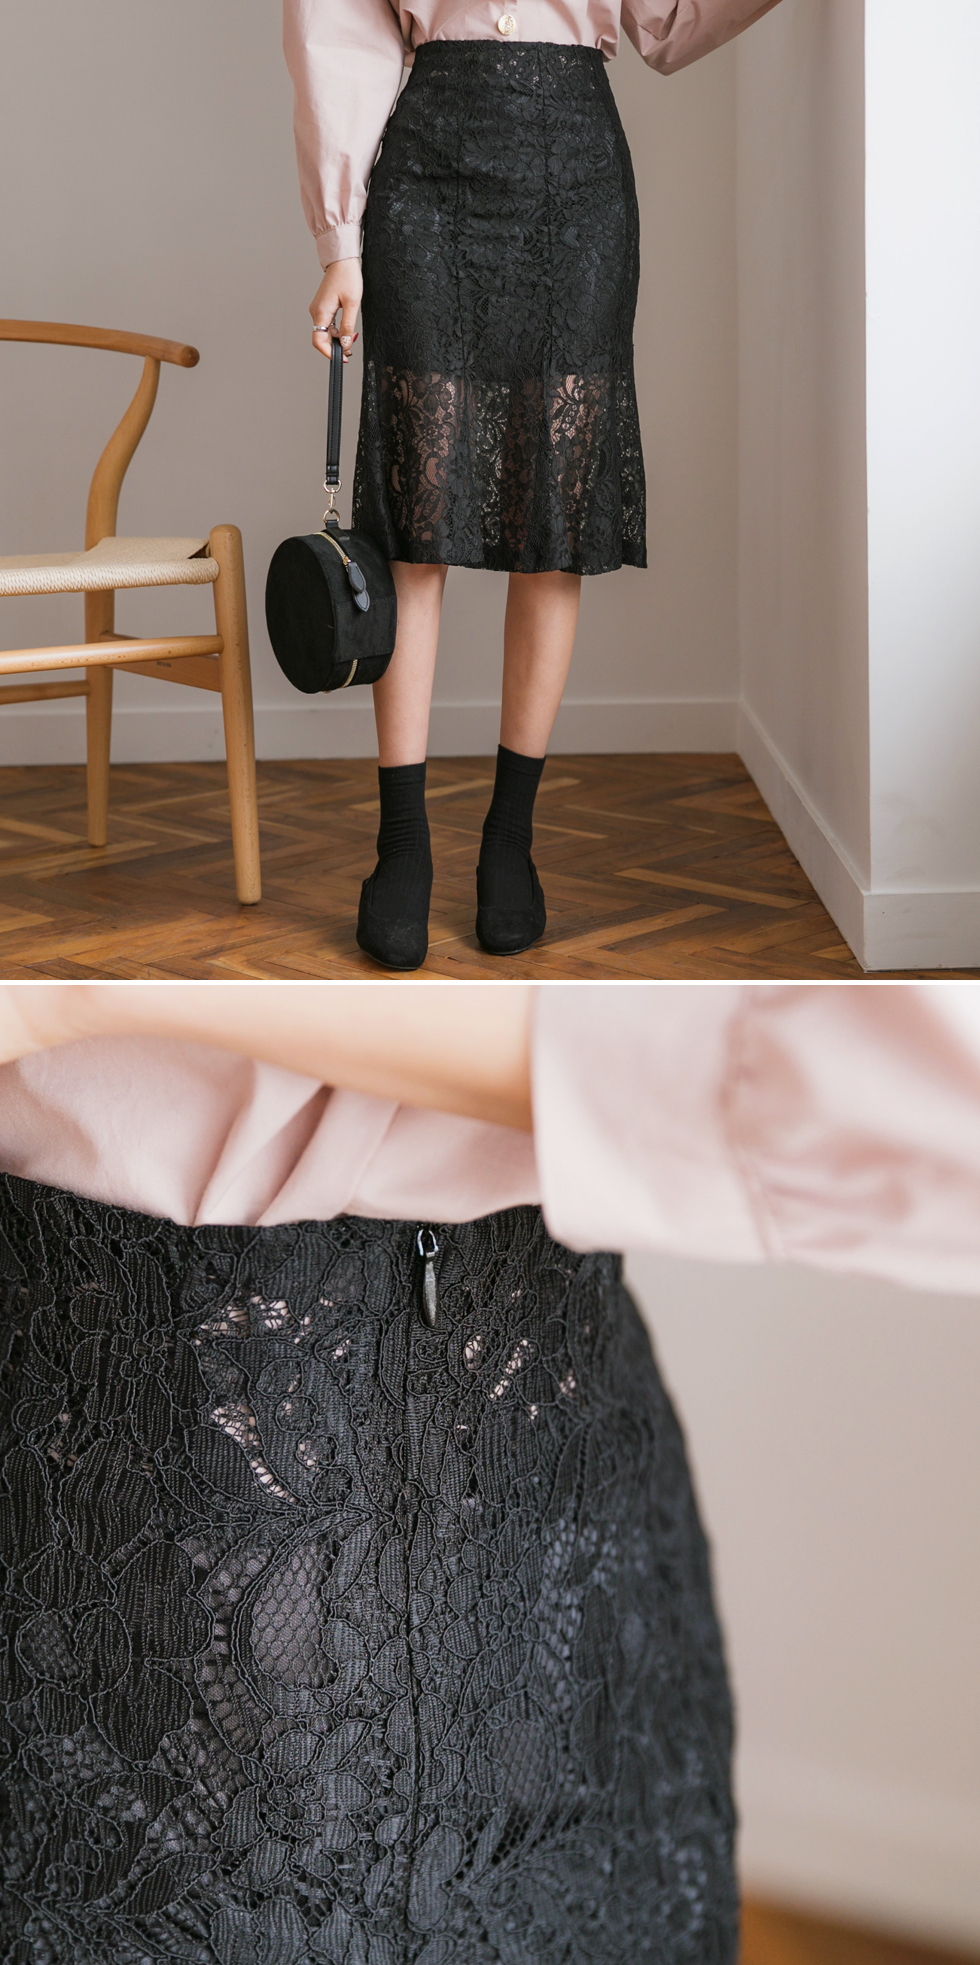 Lace maid skirt